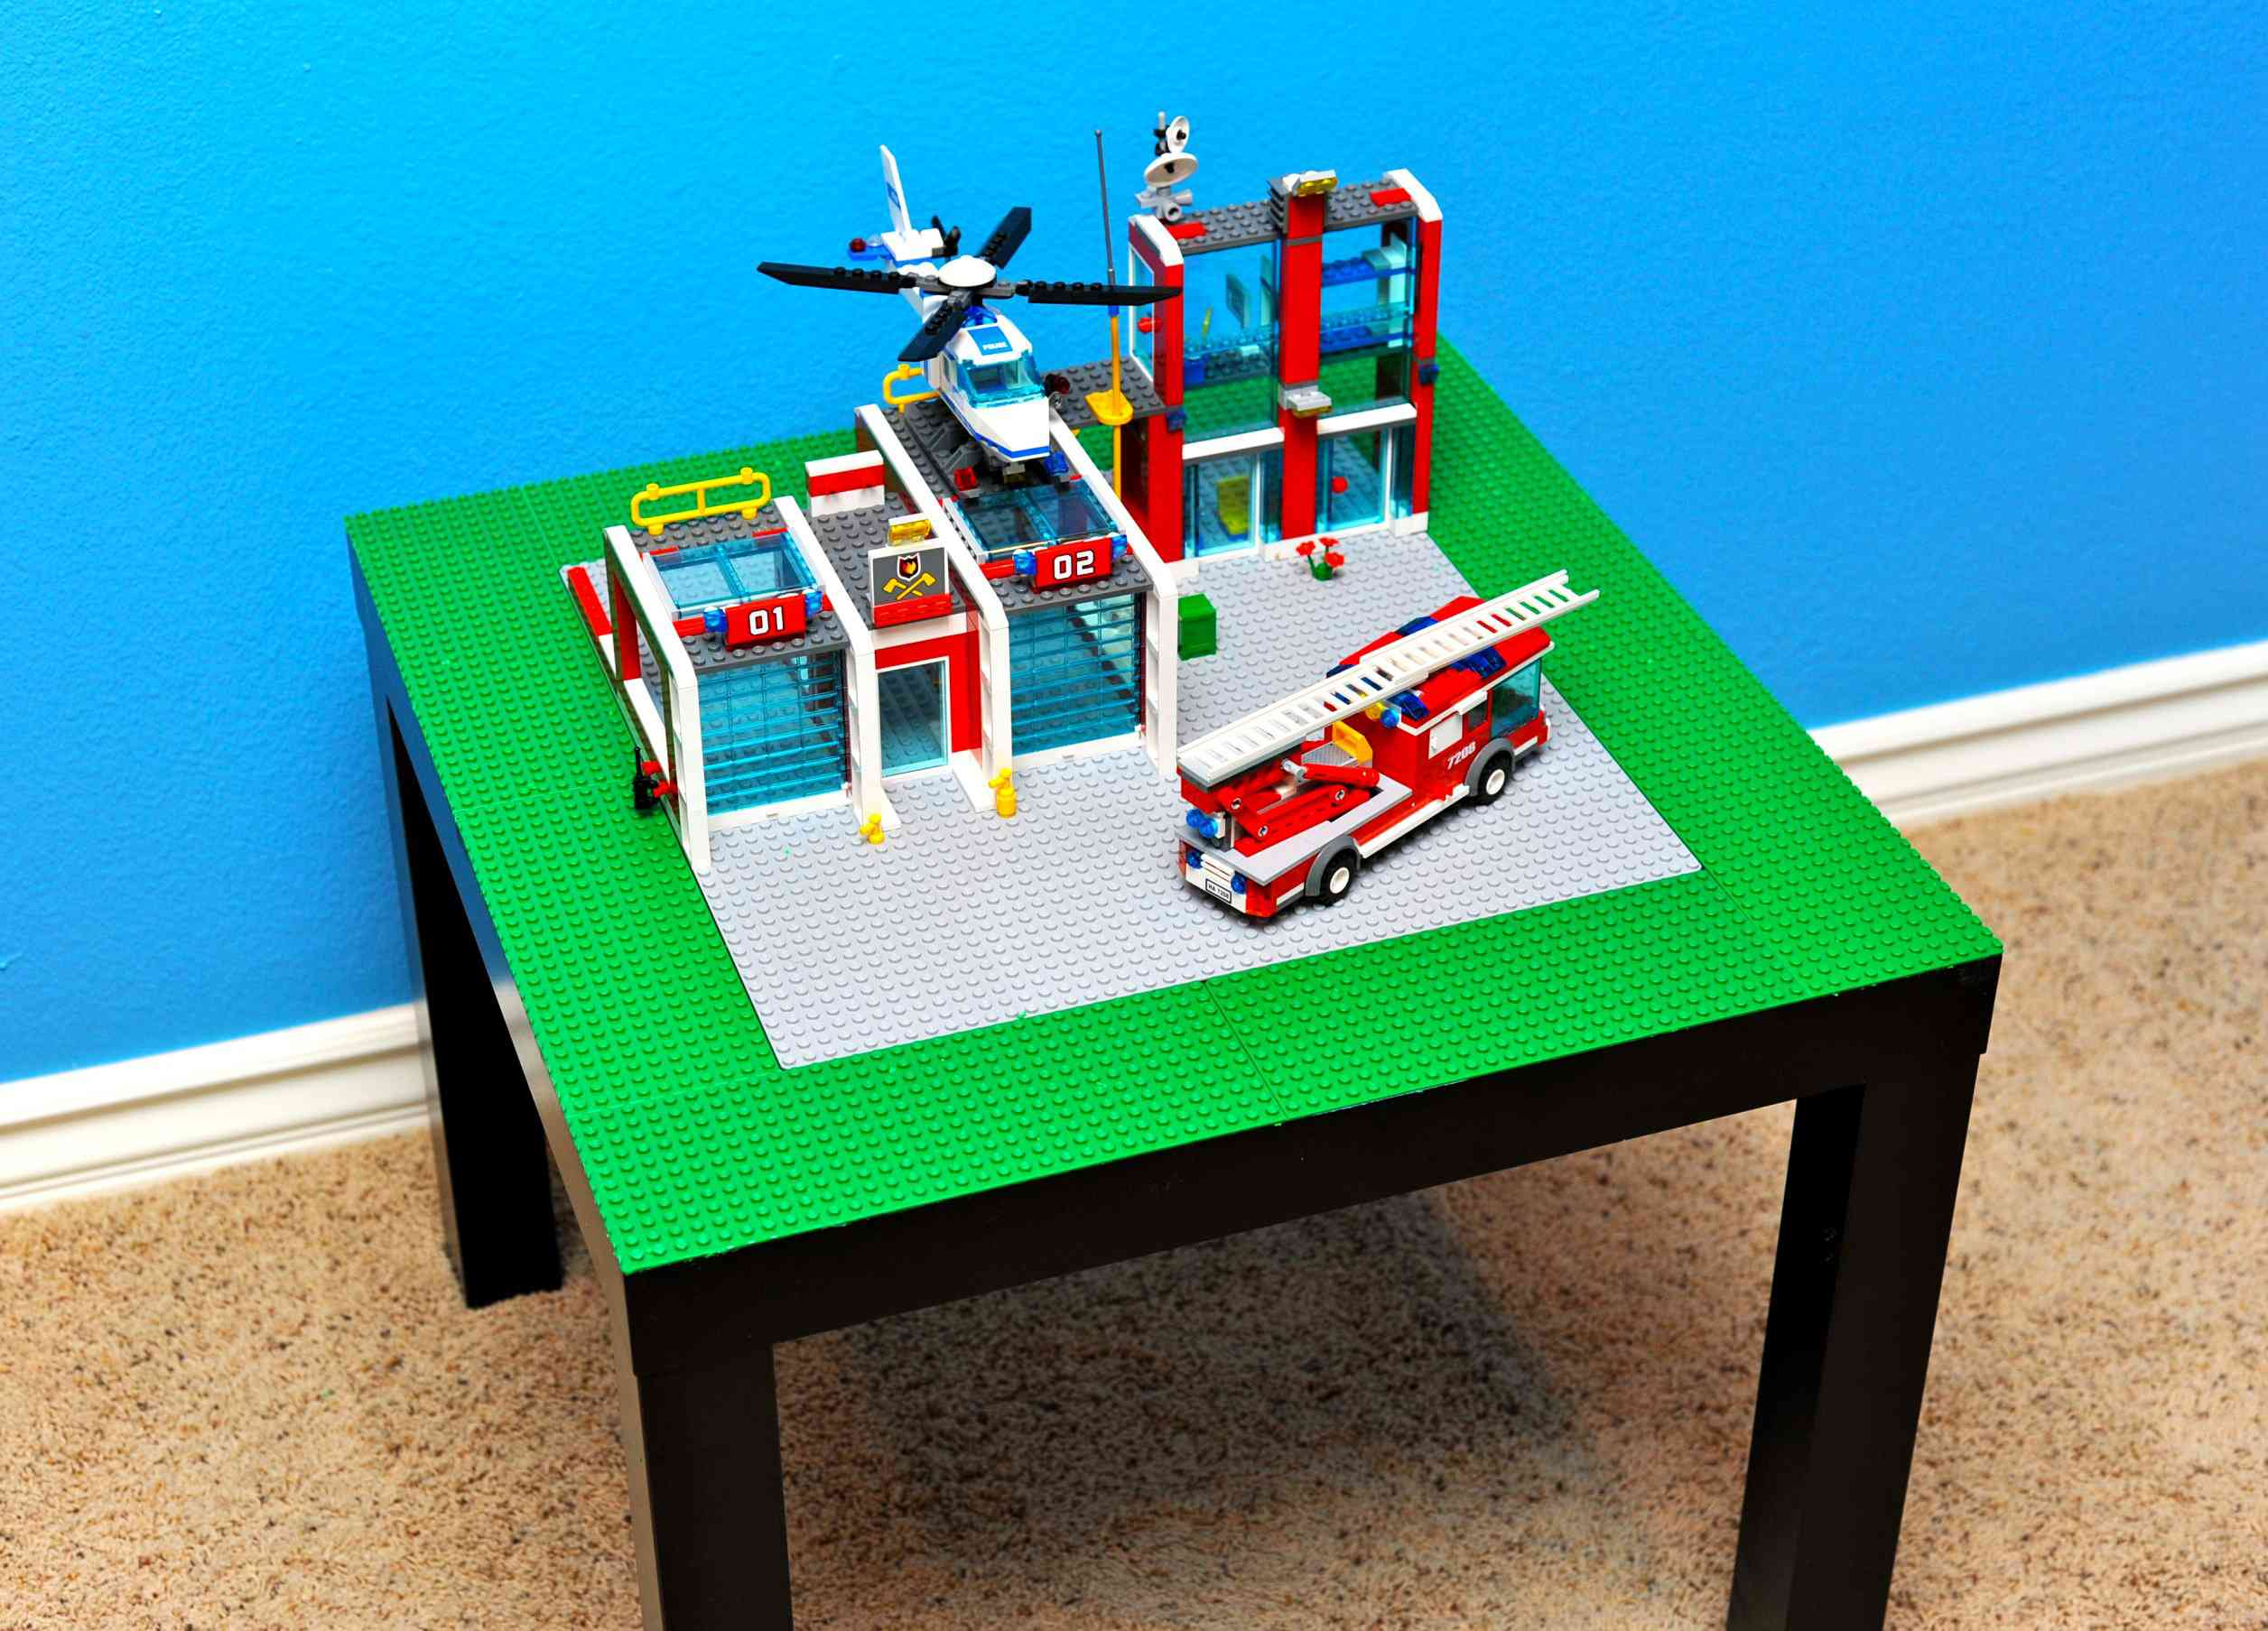 A lego table with a lego fire station built on top